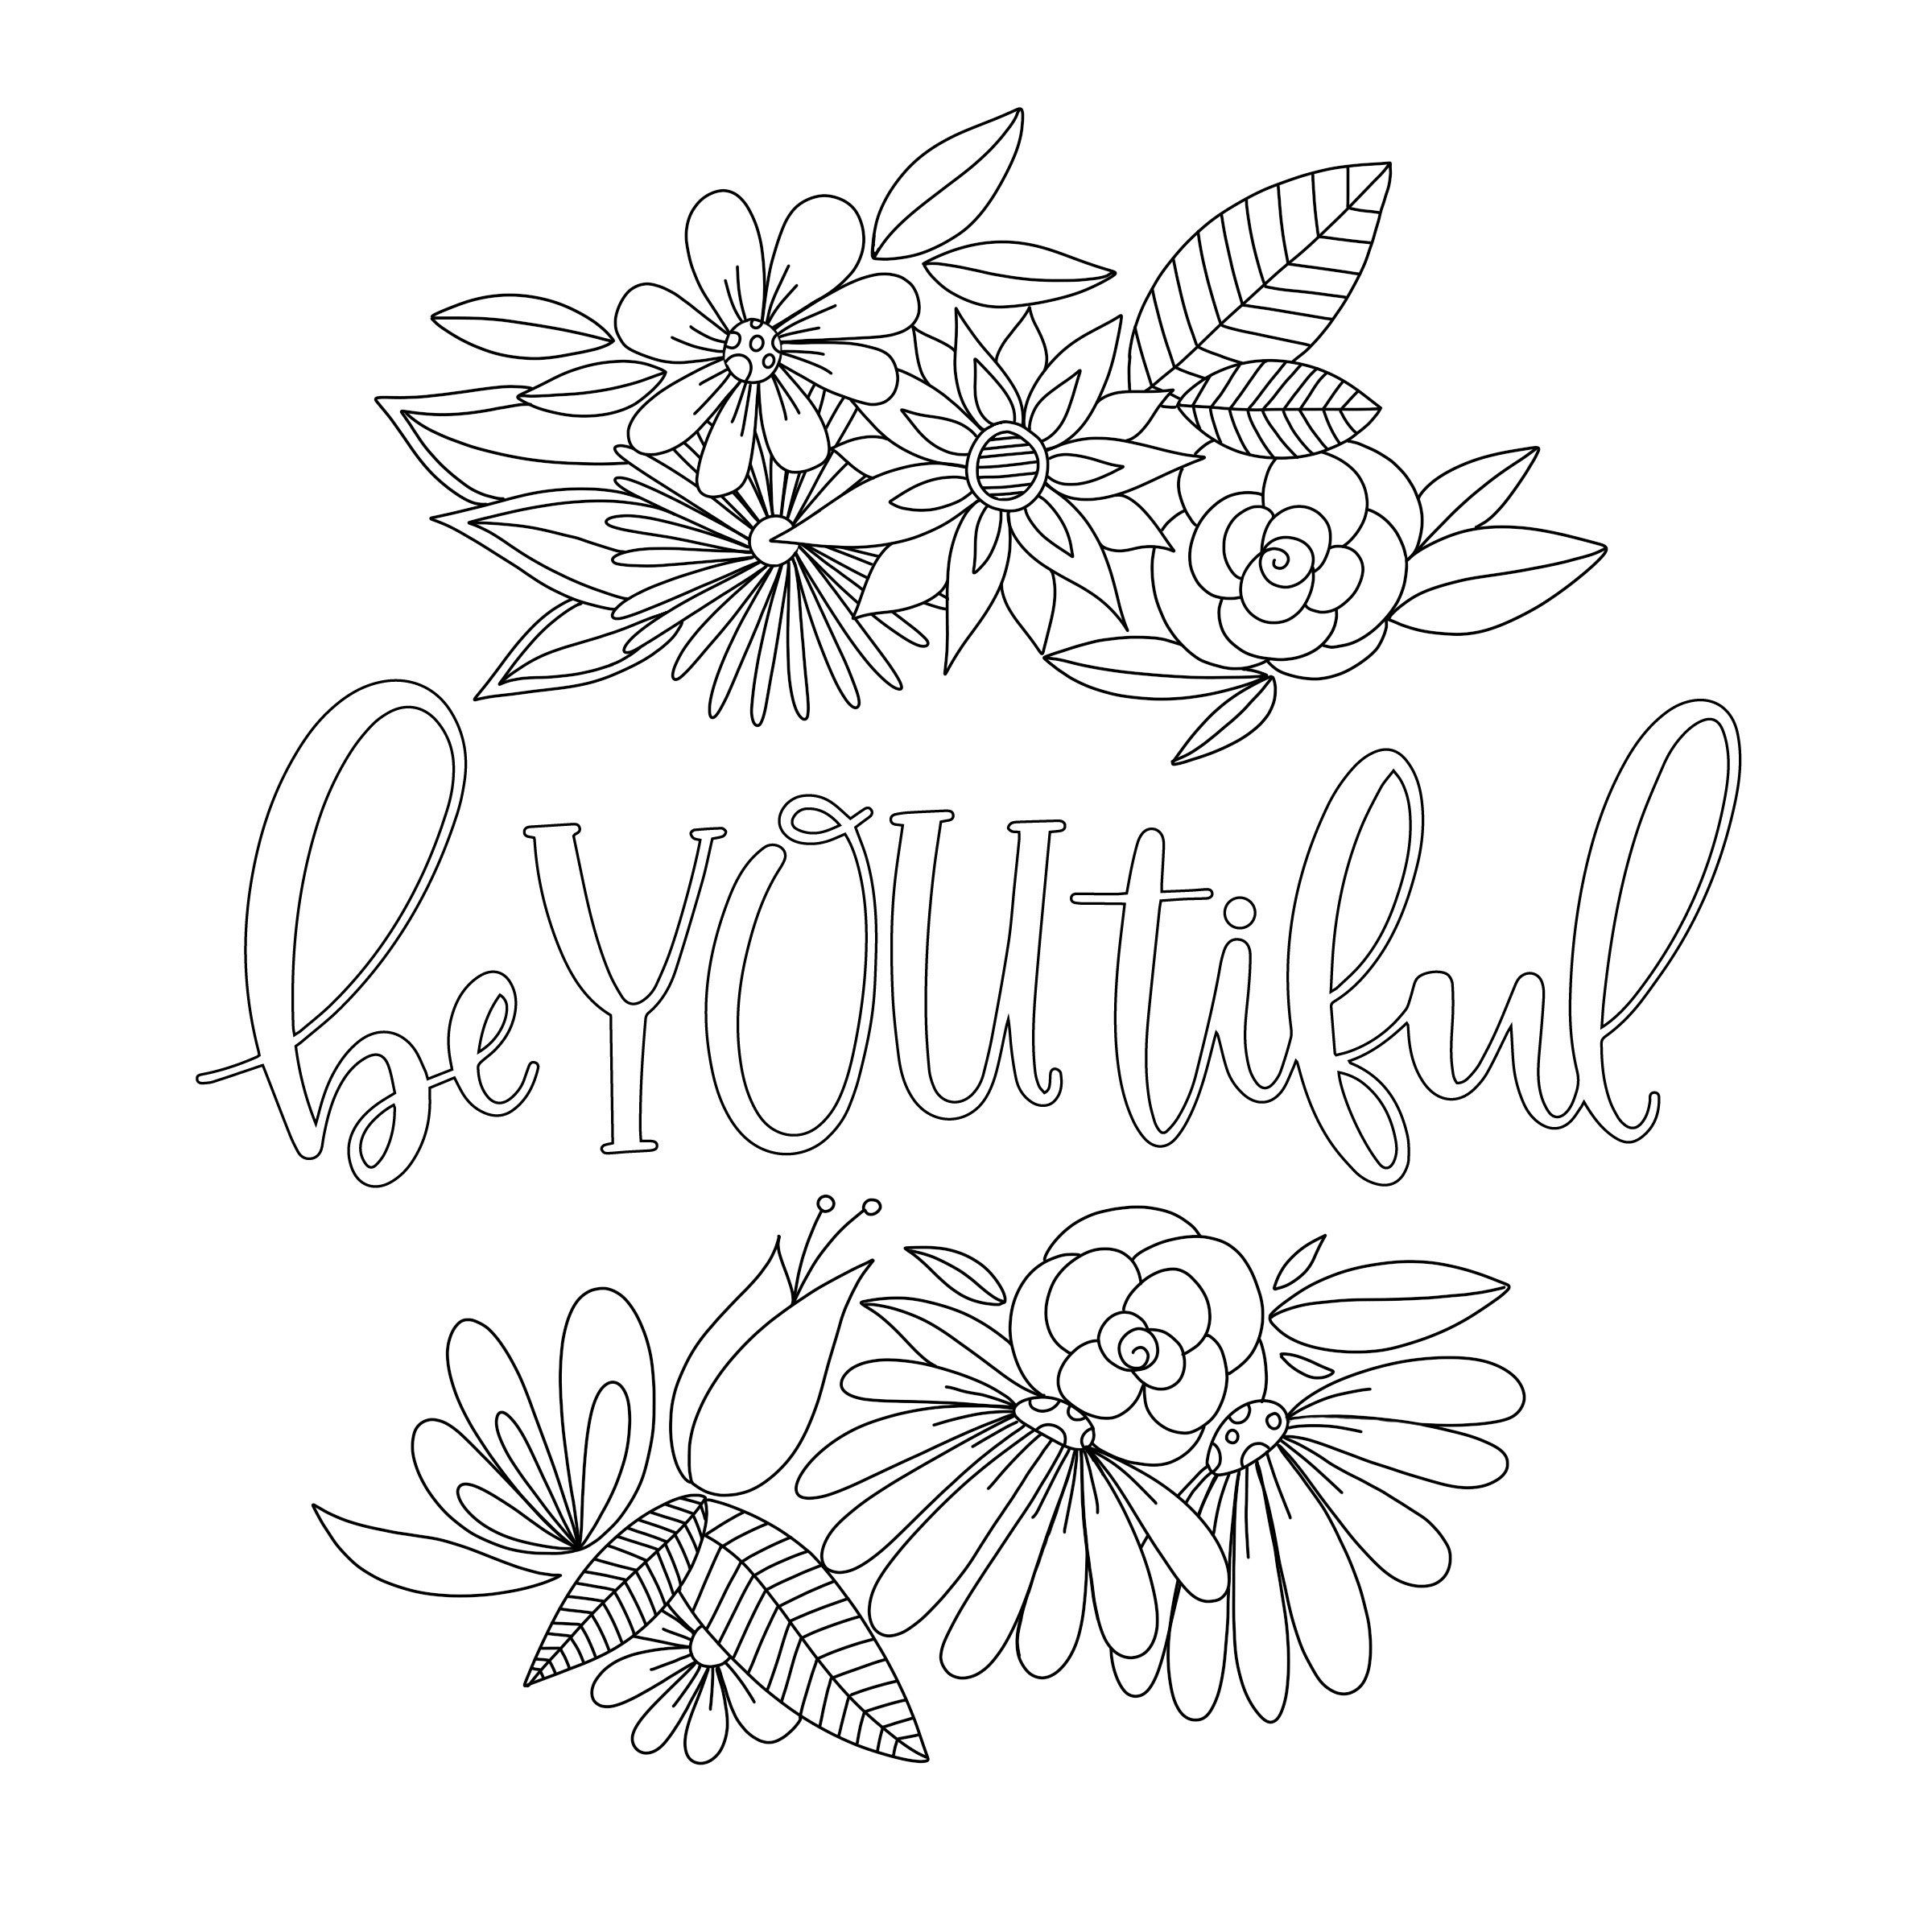 3 Motivational Printable Coloring Pages Zentangle Coloring